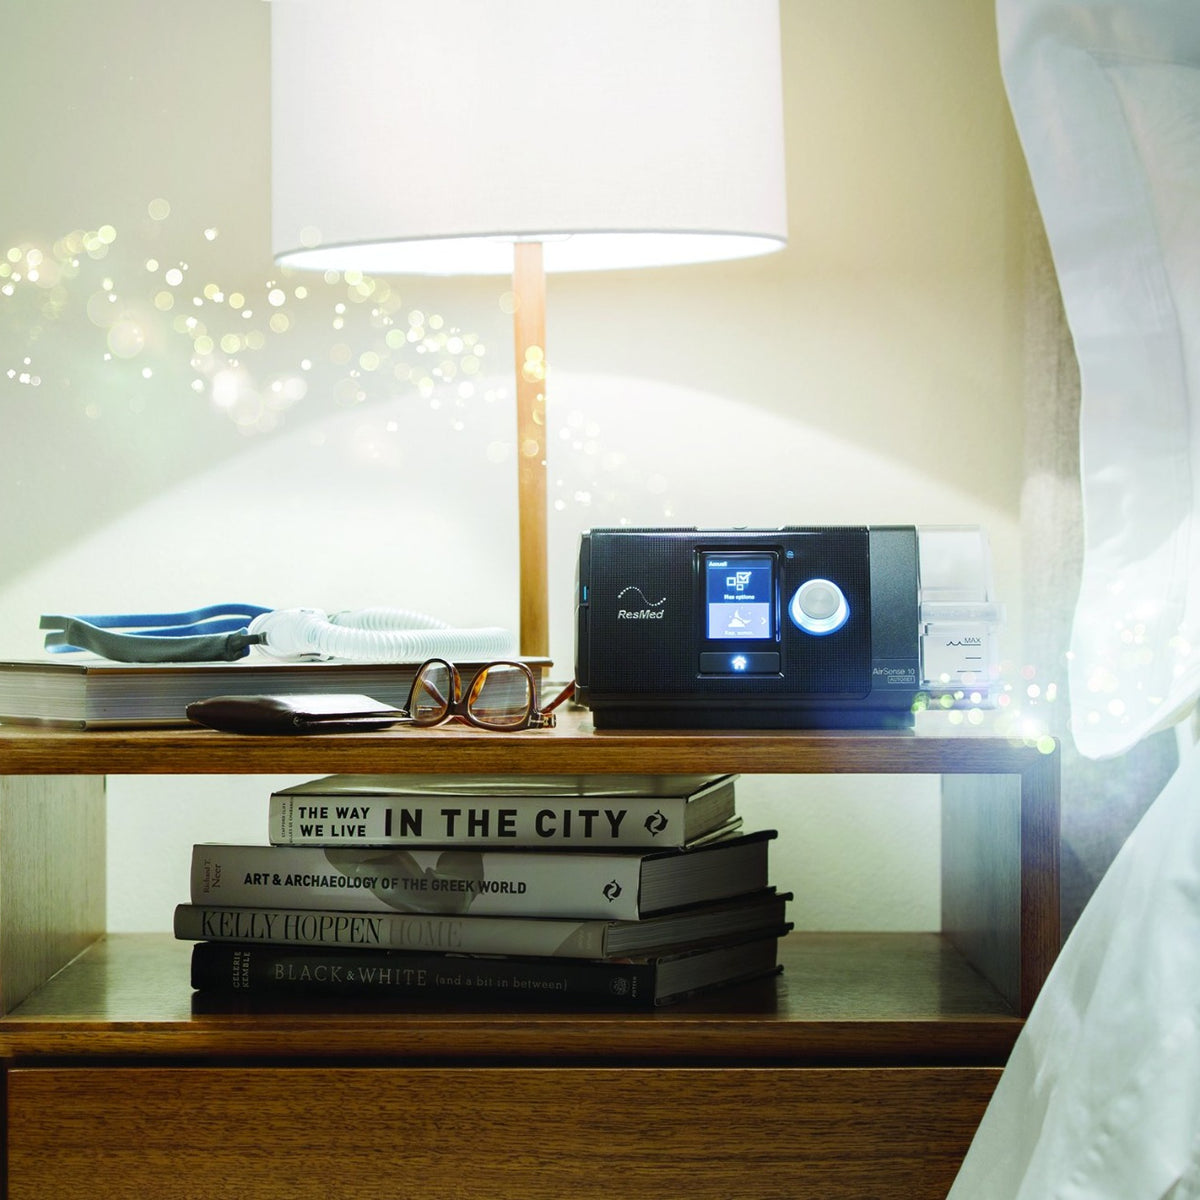 Airsense 10 on nightstand.